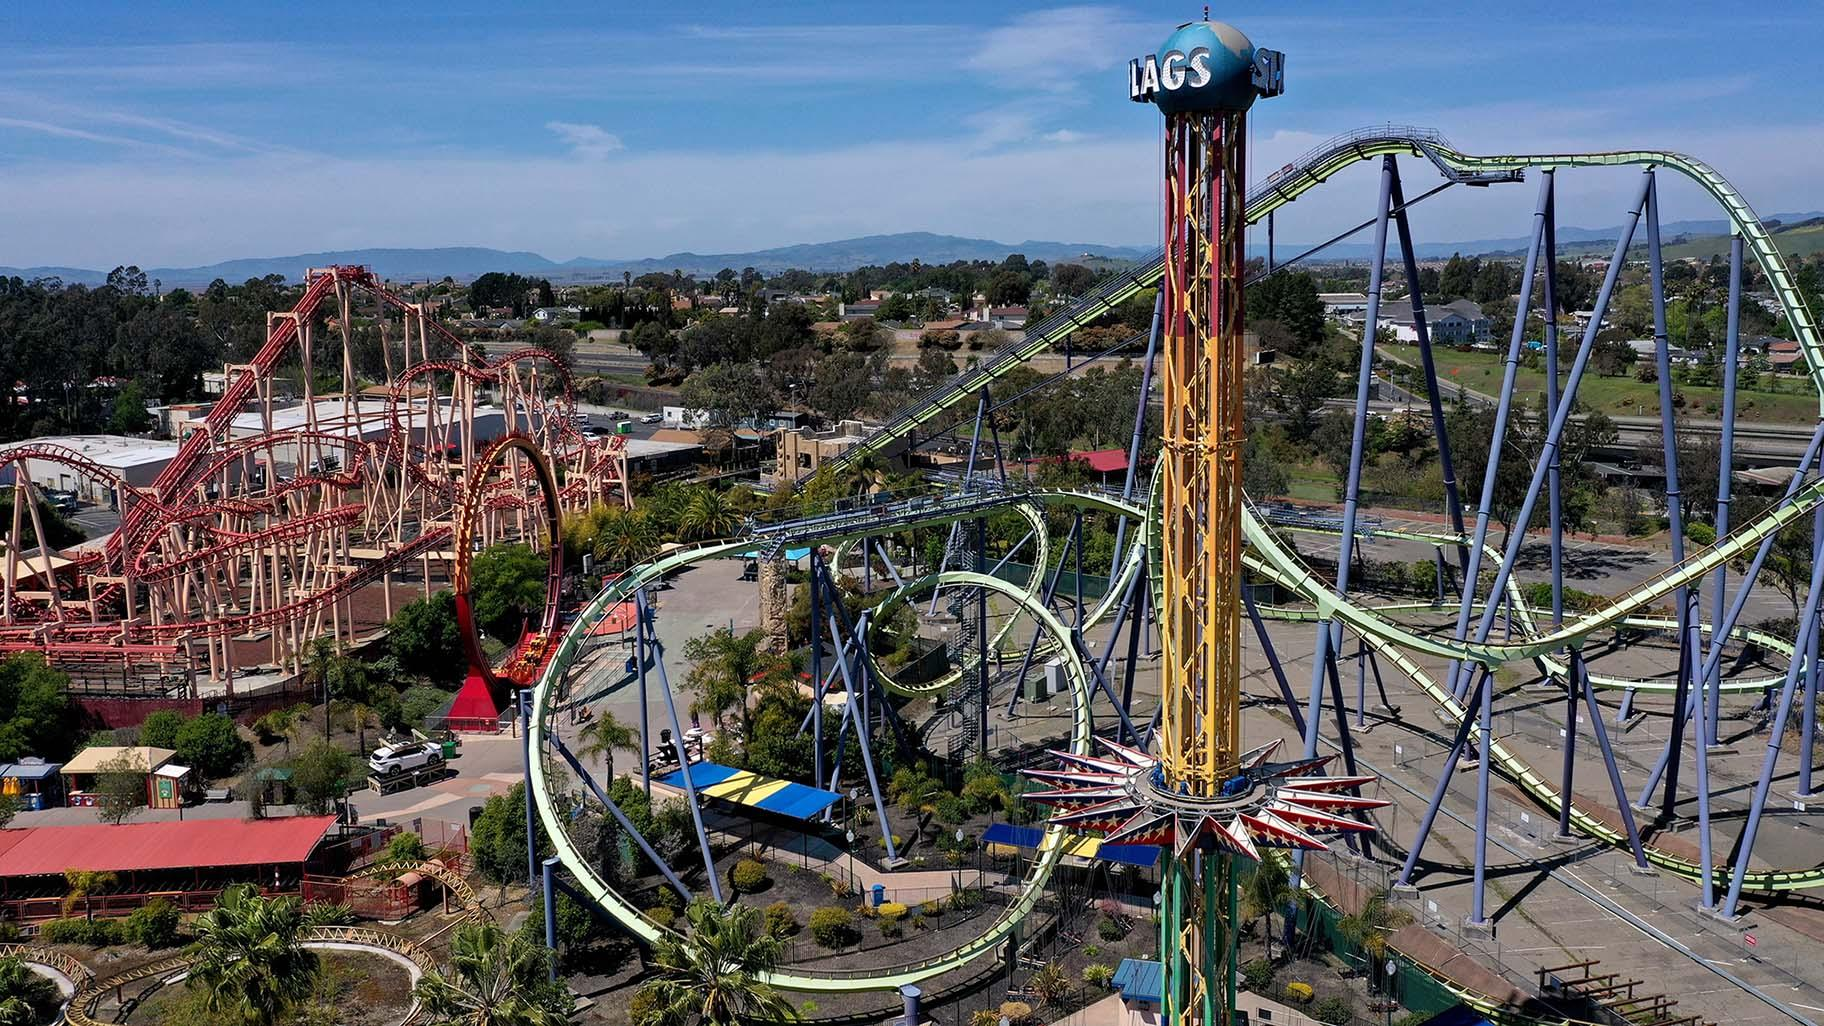 Six Flags Plans To Open All Of Its Amusement Parks For 2021 Season Chicago News Wttw